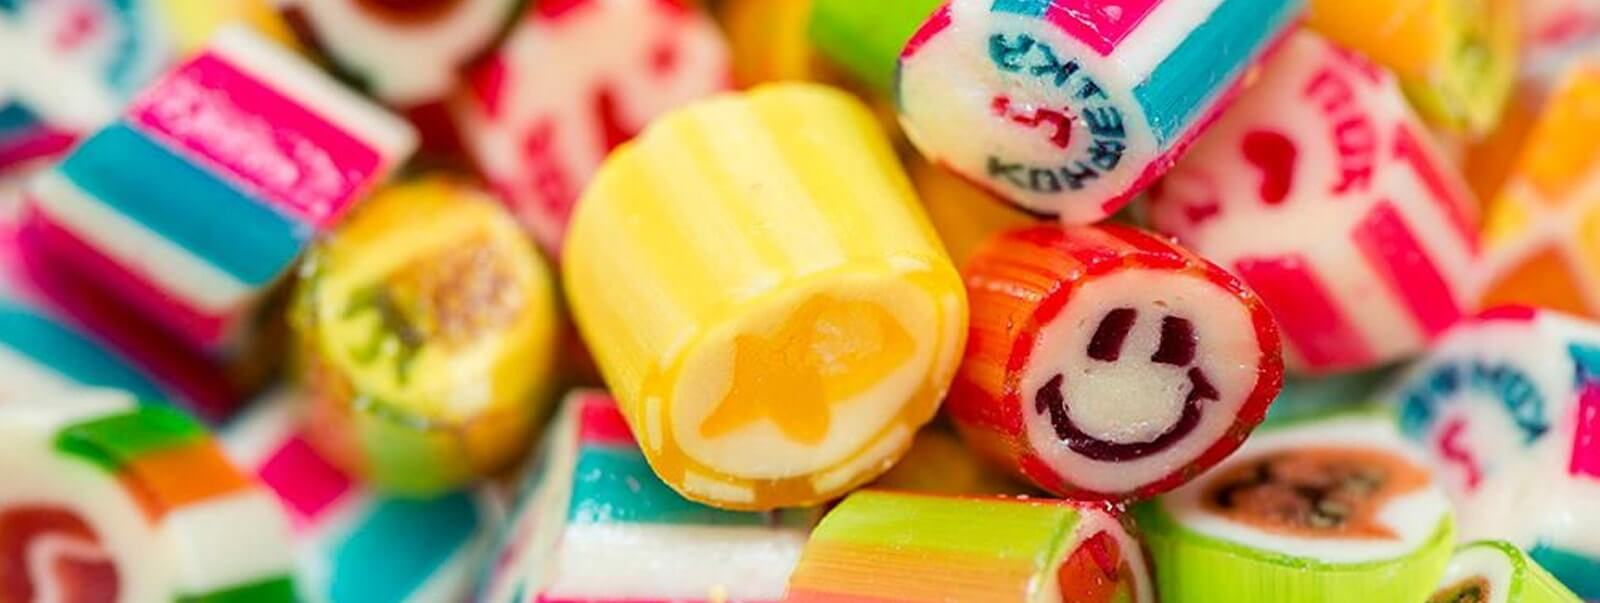 Malaysia Lollipop Chewy Candy Stick Sweets Manufacturer